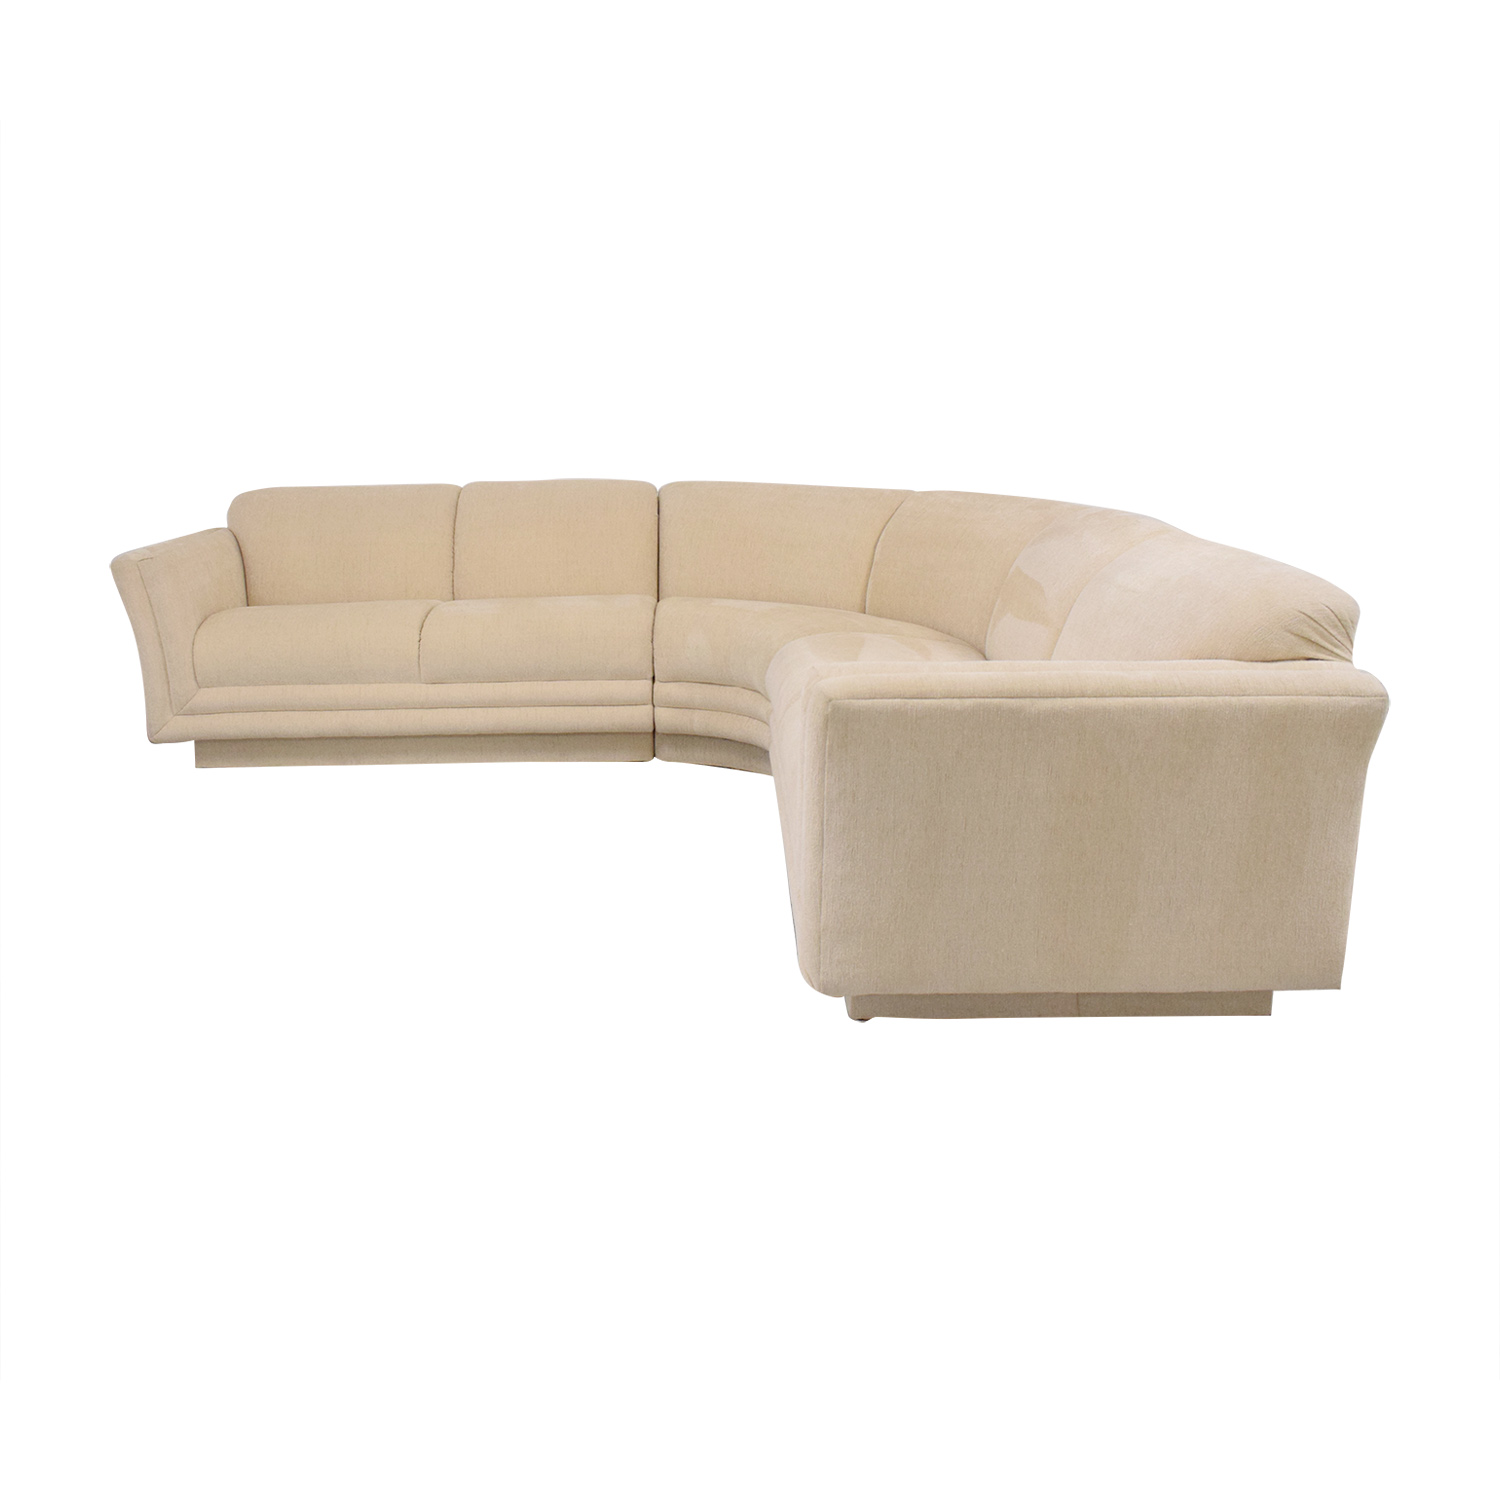 Huffman Koos Curved Sectional Sofa sale